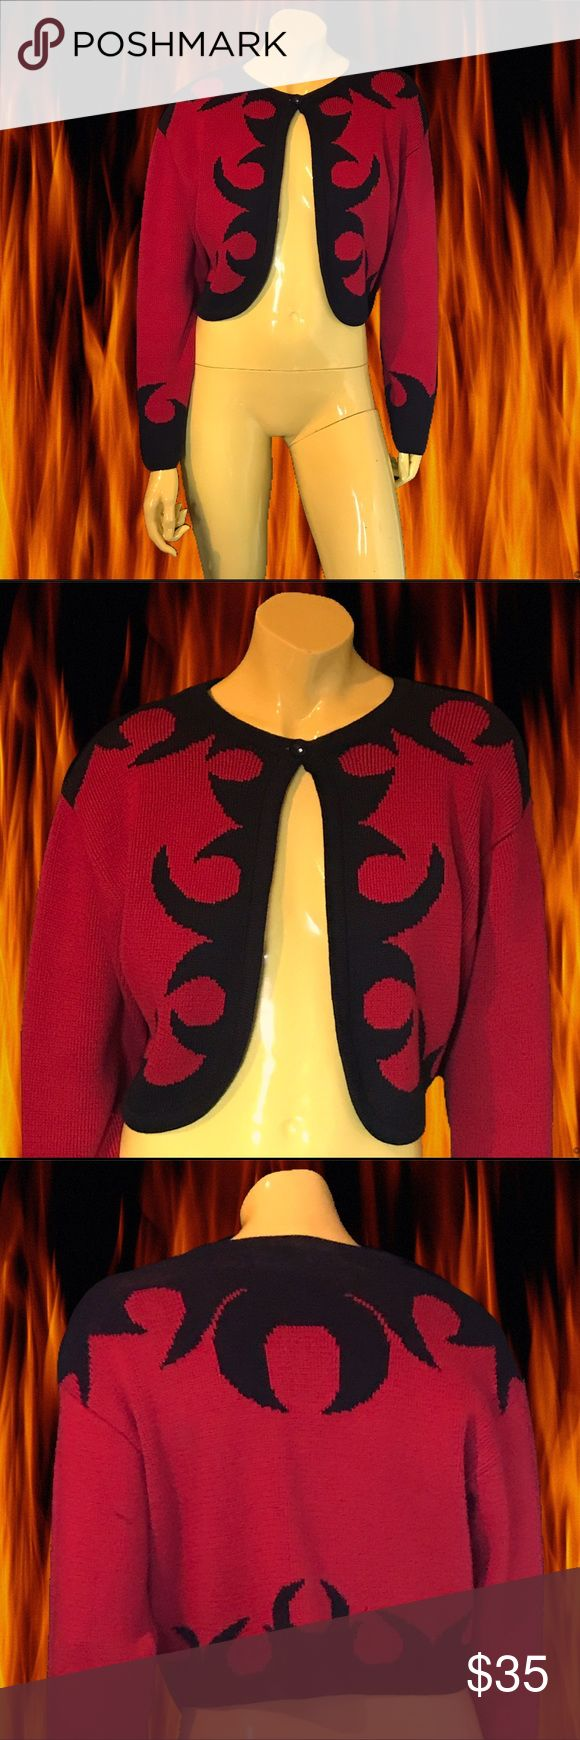 """•🔥🖤 90s Flame & Thorn Knit Bolero Cardigan 🖤🔥• Perfect lil' cardigan to match the coal you got for Christmas. 💥💨✔️✨.  : GHM Gallay • 💯% Cotton • M • Made in Hong Kong 🇭🇰 • ⭐️⭐️⭐️⭐️/5 • Great condition; small mark on back left arm. • . • Bust: 38"""" • • Length: 16"""" • • Shoulder: 18"""" • . . • * • . • ✶ • . • * •. #vintage #vtg #retro #1990 #1990s #90 #90s #bolero #knit #flame #thorn #black #naughty #red #cardigan #day #drag #realbazaar #seattle Vintage Sweaters Cardigans"""